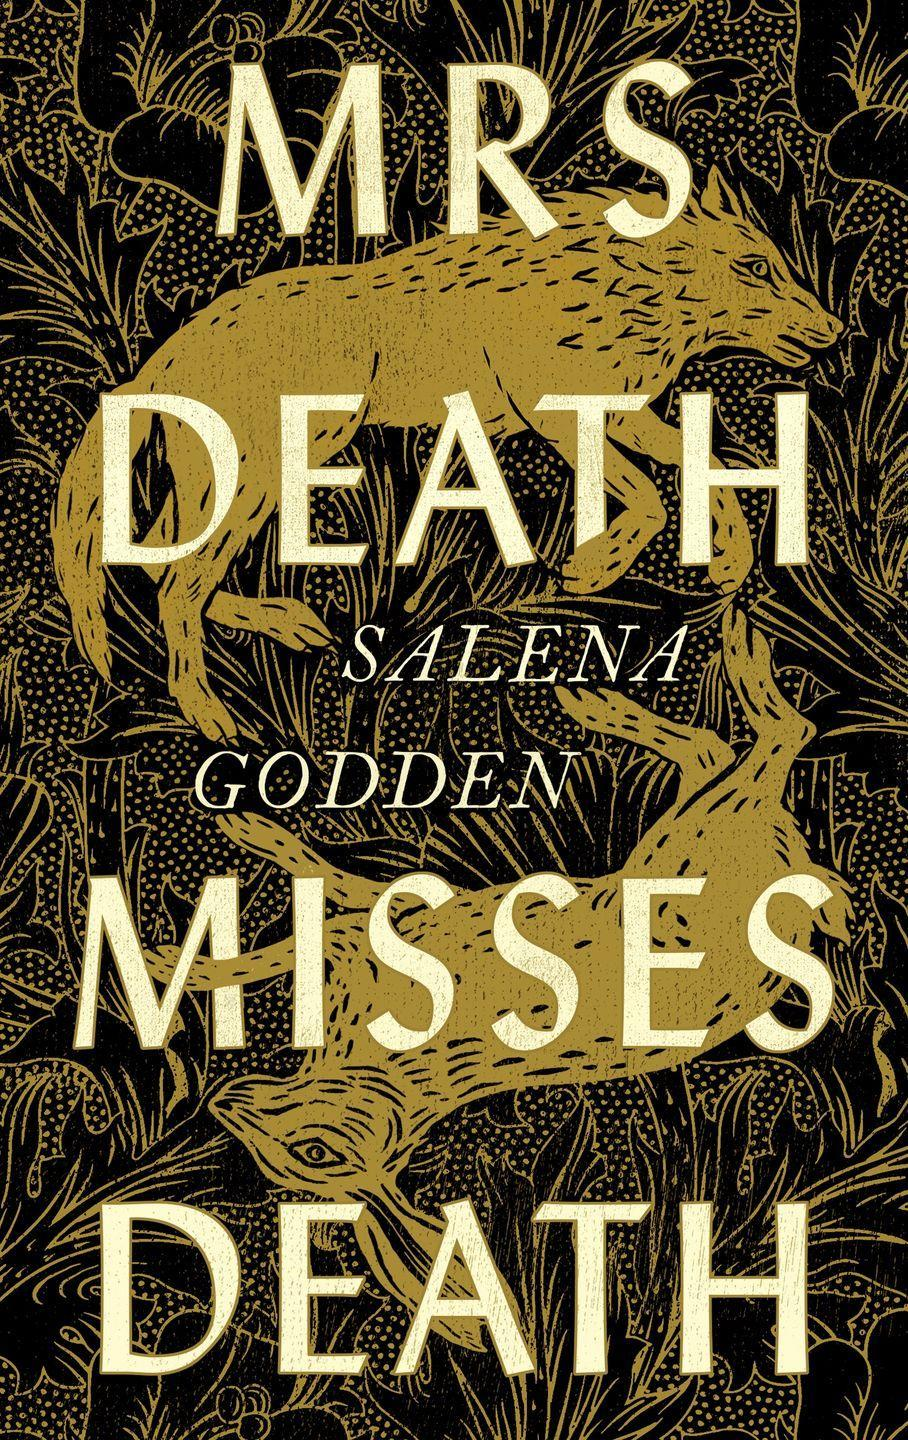 """<p>Despite the bleakness assumed by its title, this is a profoundly hopeful book, full of inspiring feats of imagination. Set in modern-day London, this bold debut from spoken-word poet Godden is packed with an intertextual feast of lyrics and auto-fiction, all the while making sharp observations about gender, race, happiness and (Mrs) death herself.</p><p><strong>Read Bazaar's interview with Salena Godden in the <a href=""""https://magsdirect.co.uk/magazine/harpers-bazaar-uk-feb-21/"""" rel=""""nofollow noopener"""" target=""""_blank"""" data-ylk=""""slk:February 2021"""" class=""""link rapid-noclick-resp"""">February 2021</a> issue. </strong></p><p><a class=""""link rapid-noclick-resp"""" href=""""https://www.amazon.co.uk/Mrs-Death-Misses-Salena-Godden/dp/1838851194/ref=sr_1_1?dchild=1&keywords=Mrs+death+misses+death&qid=1616004765&sr=8-1&tag=hearstuk-yahoo-21&ascsubtag=%5Bartid%7C1927.g.35865085%5Bsrc%7Cyahoo-uk"""" rel=""""nofollow noopener"""" target=""""_blank"""" data-ylk=""""slk:SHOP NOW"""">SHOP NOW</a></p>"""